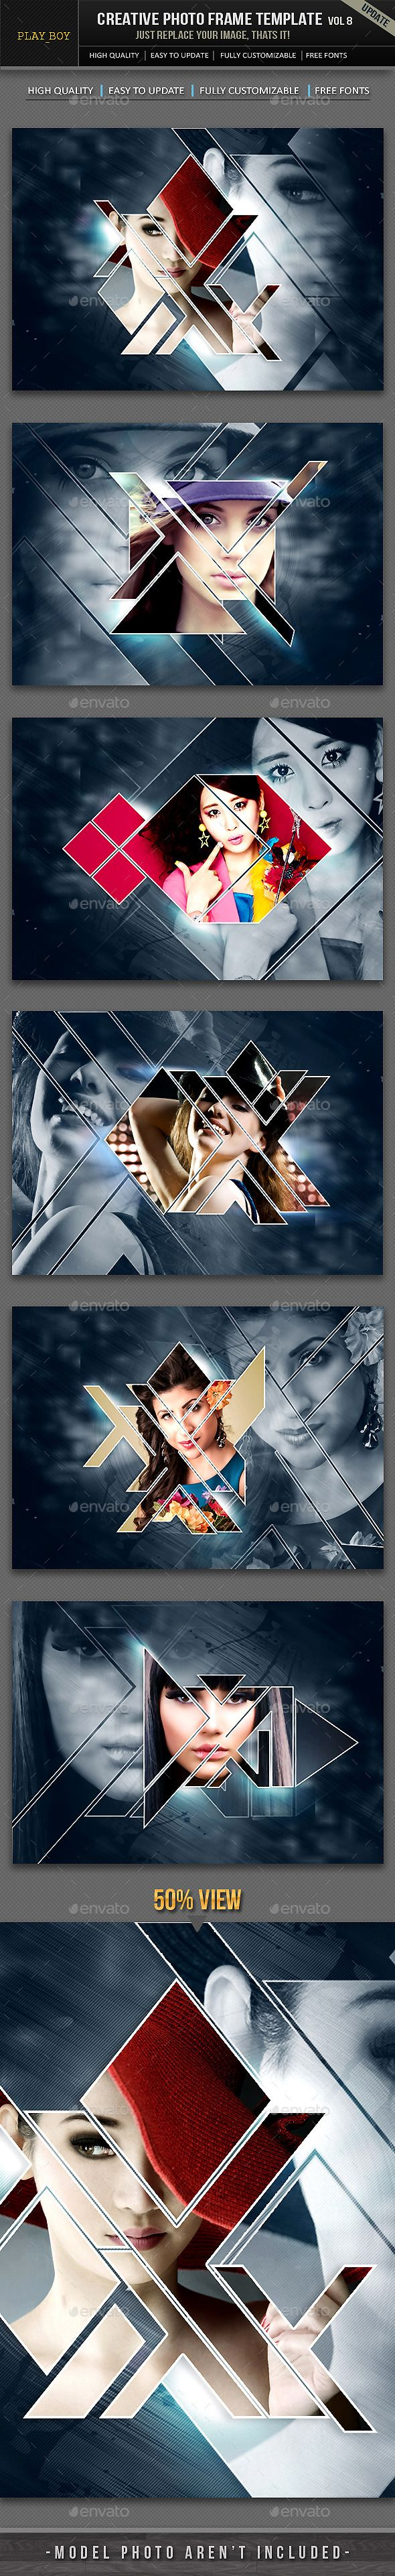 Creative Photo Frame Template PSD Download: http://graphicriver.net/item/creative-photo-frame-template/11467324?ref=ksioks